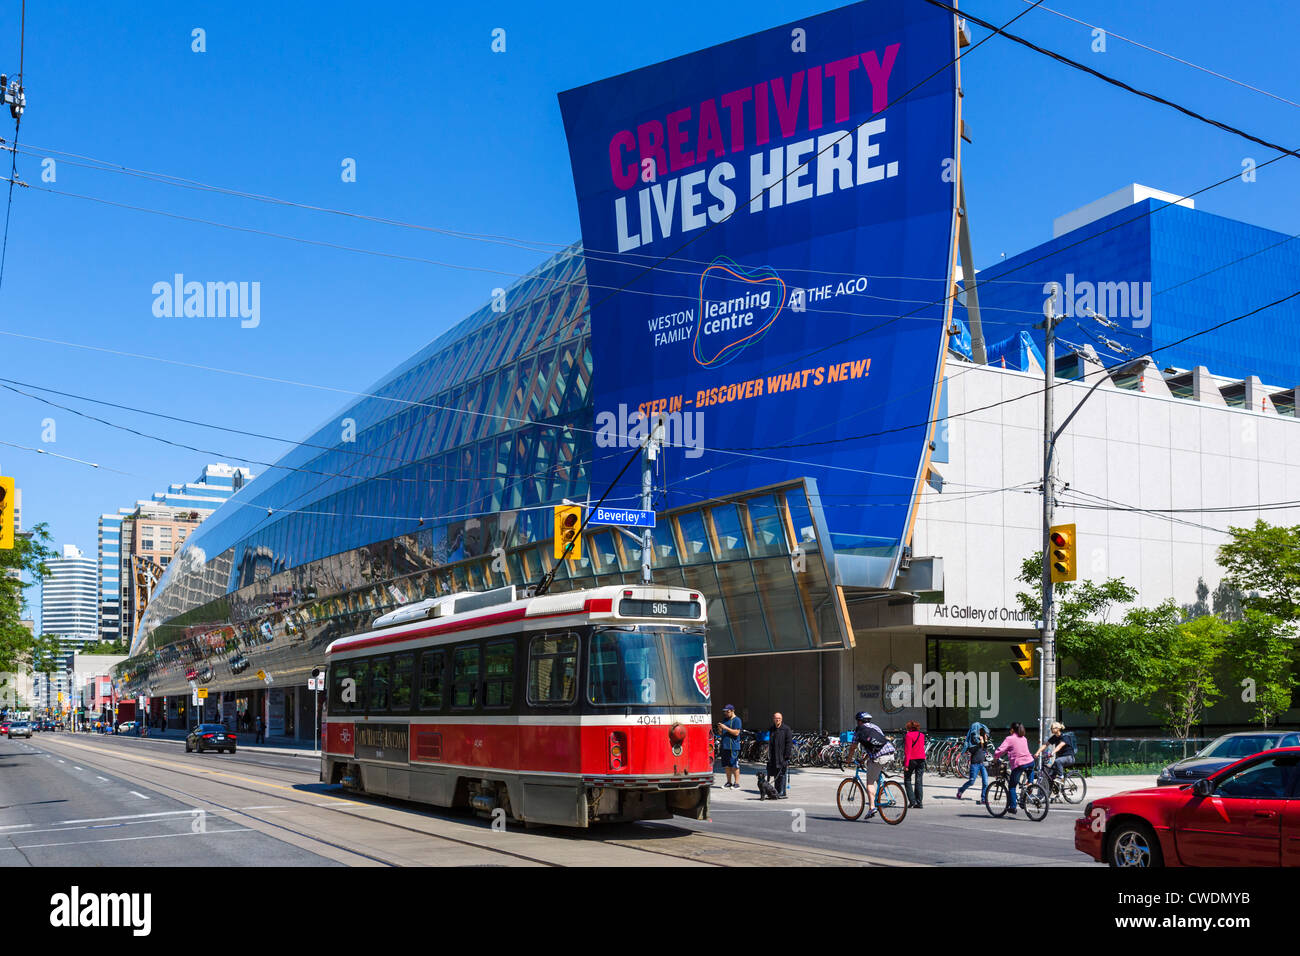 Tram in front of the Art Gallery of Ontario, redesigned by Frang Gehry, Dundas Street West, Toronto, Ontario, Canada - Stock Image